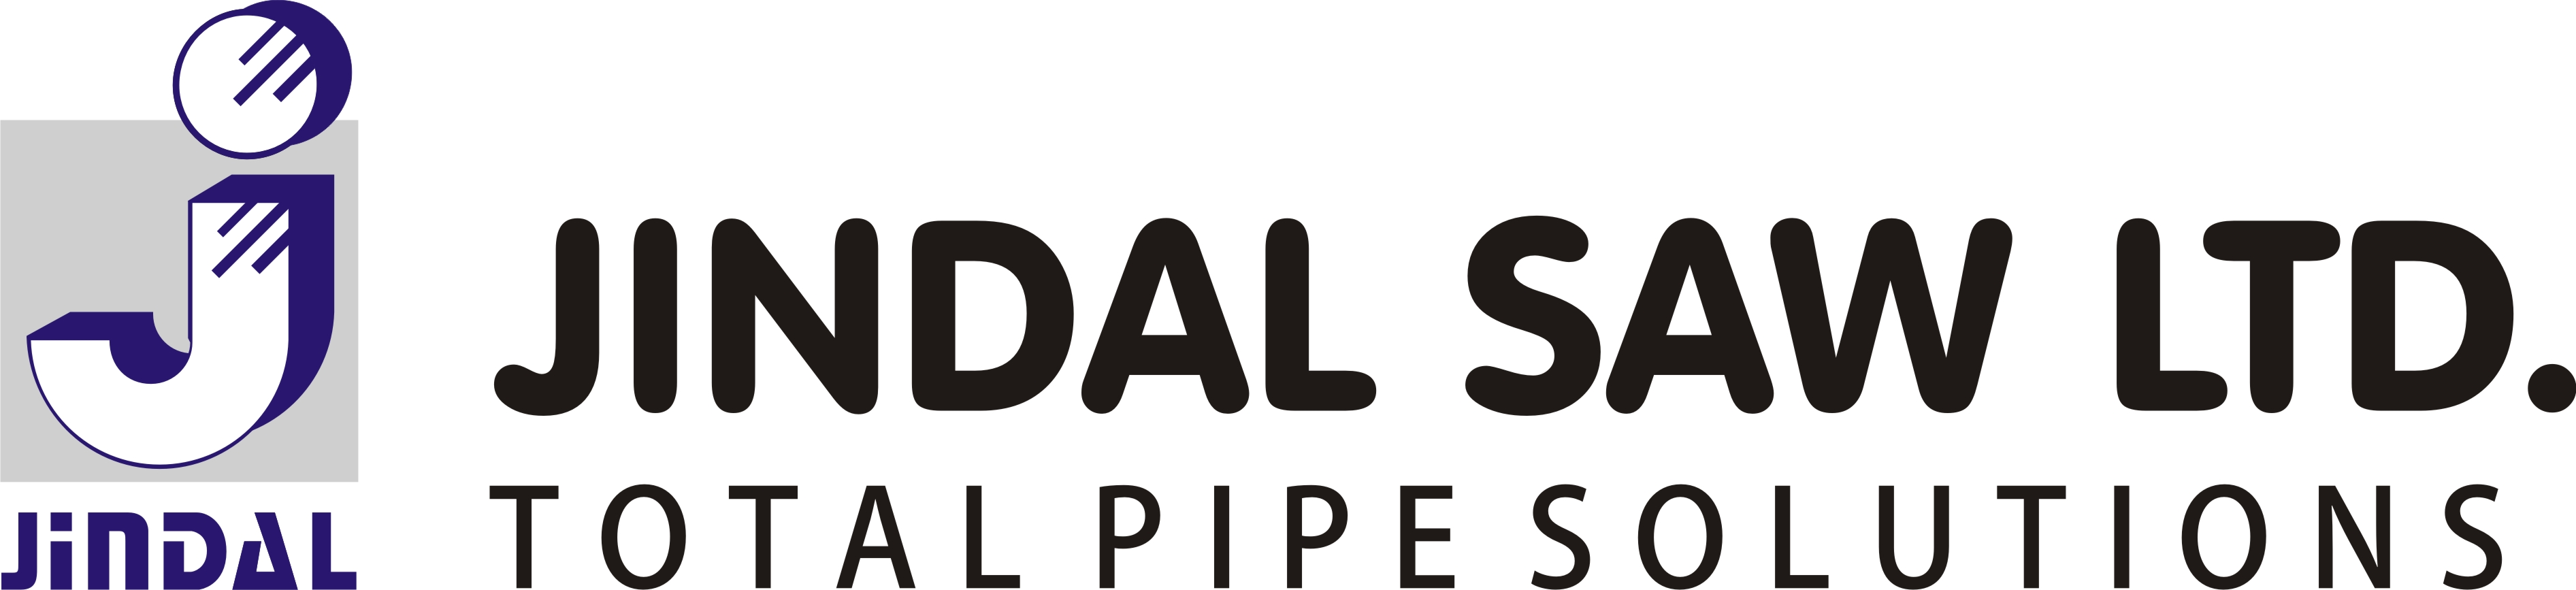 Logo of Jindal SAW Ltd.